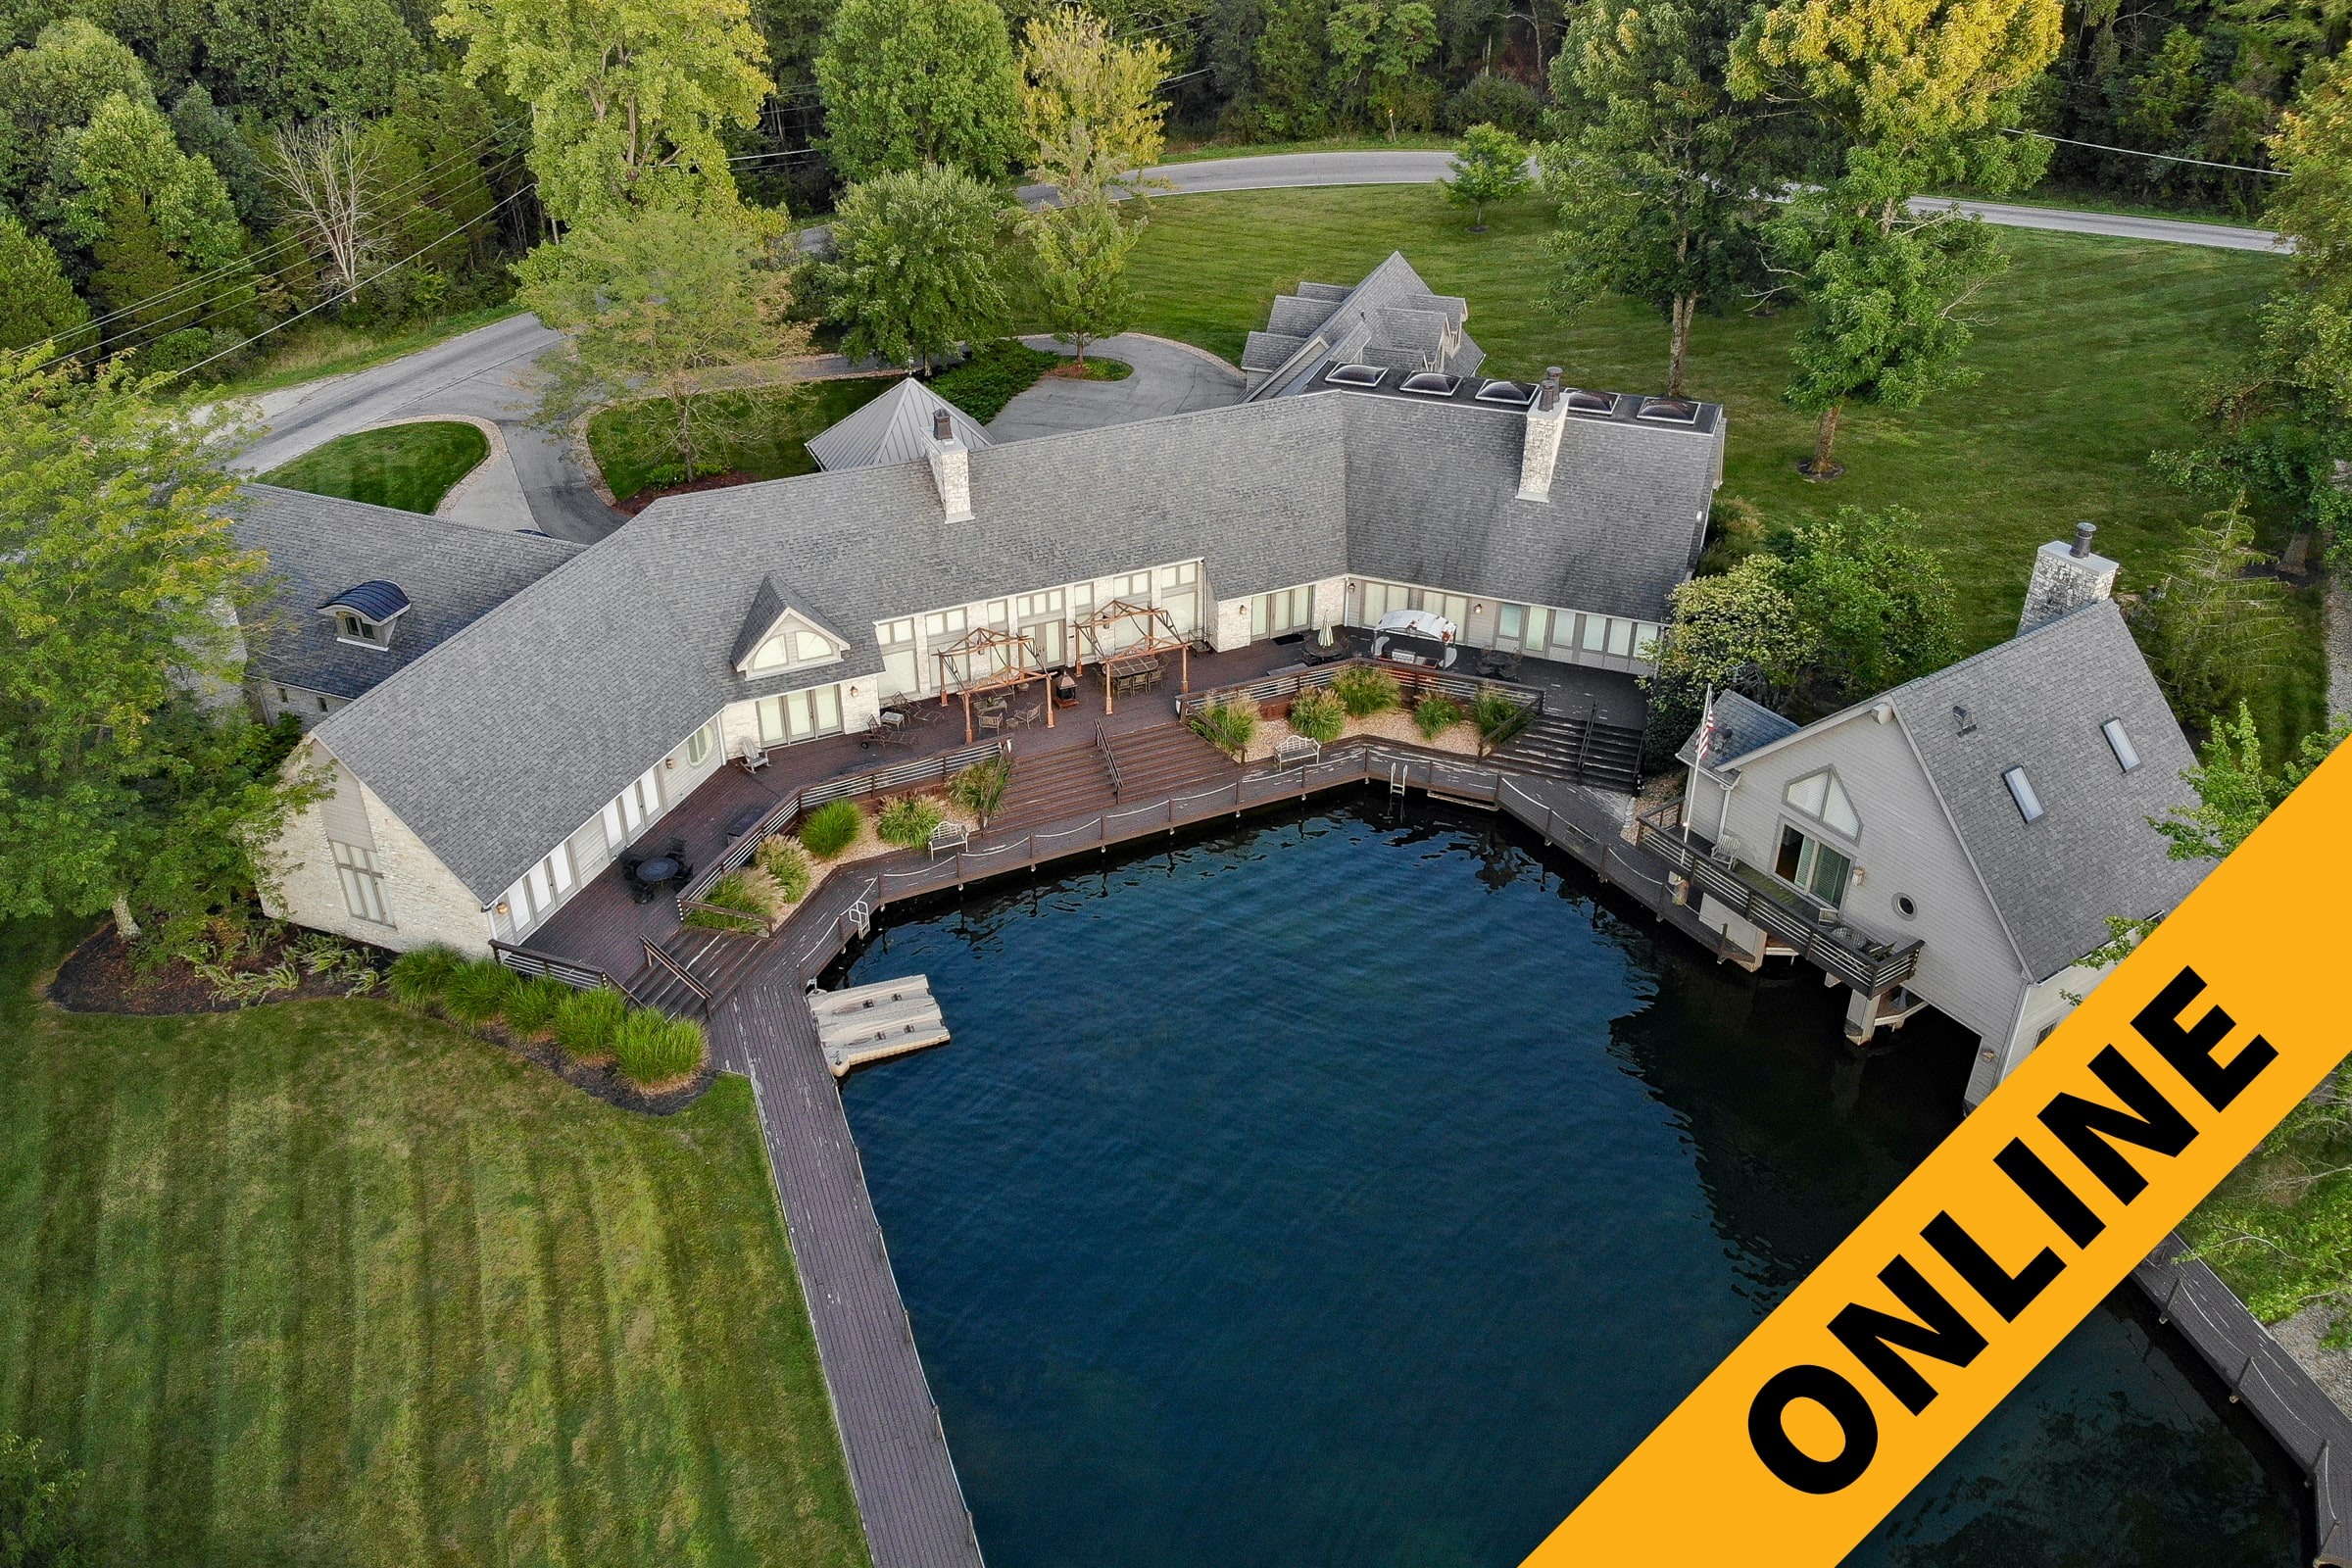 Grandview Lake Home & Boathouse Online Auction